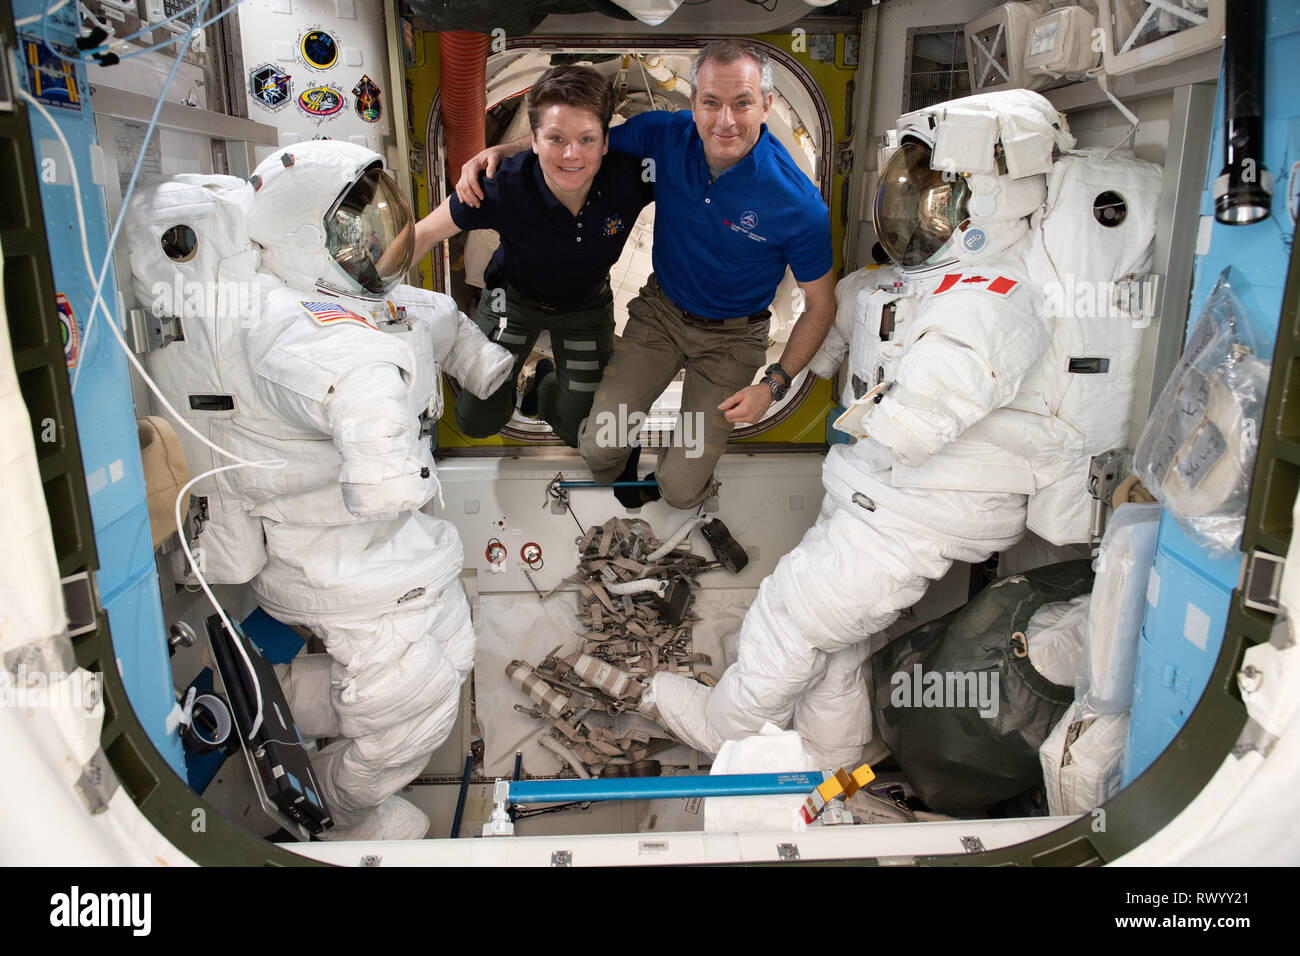 astronauts aboard the international space station - photo #5